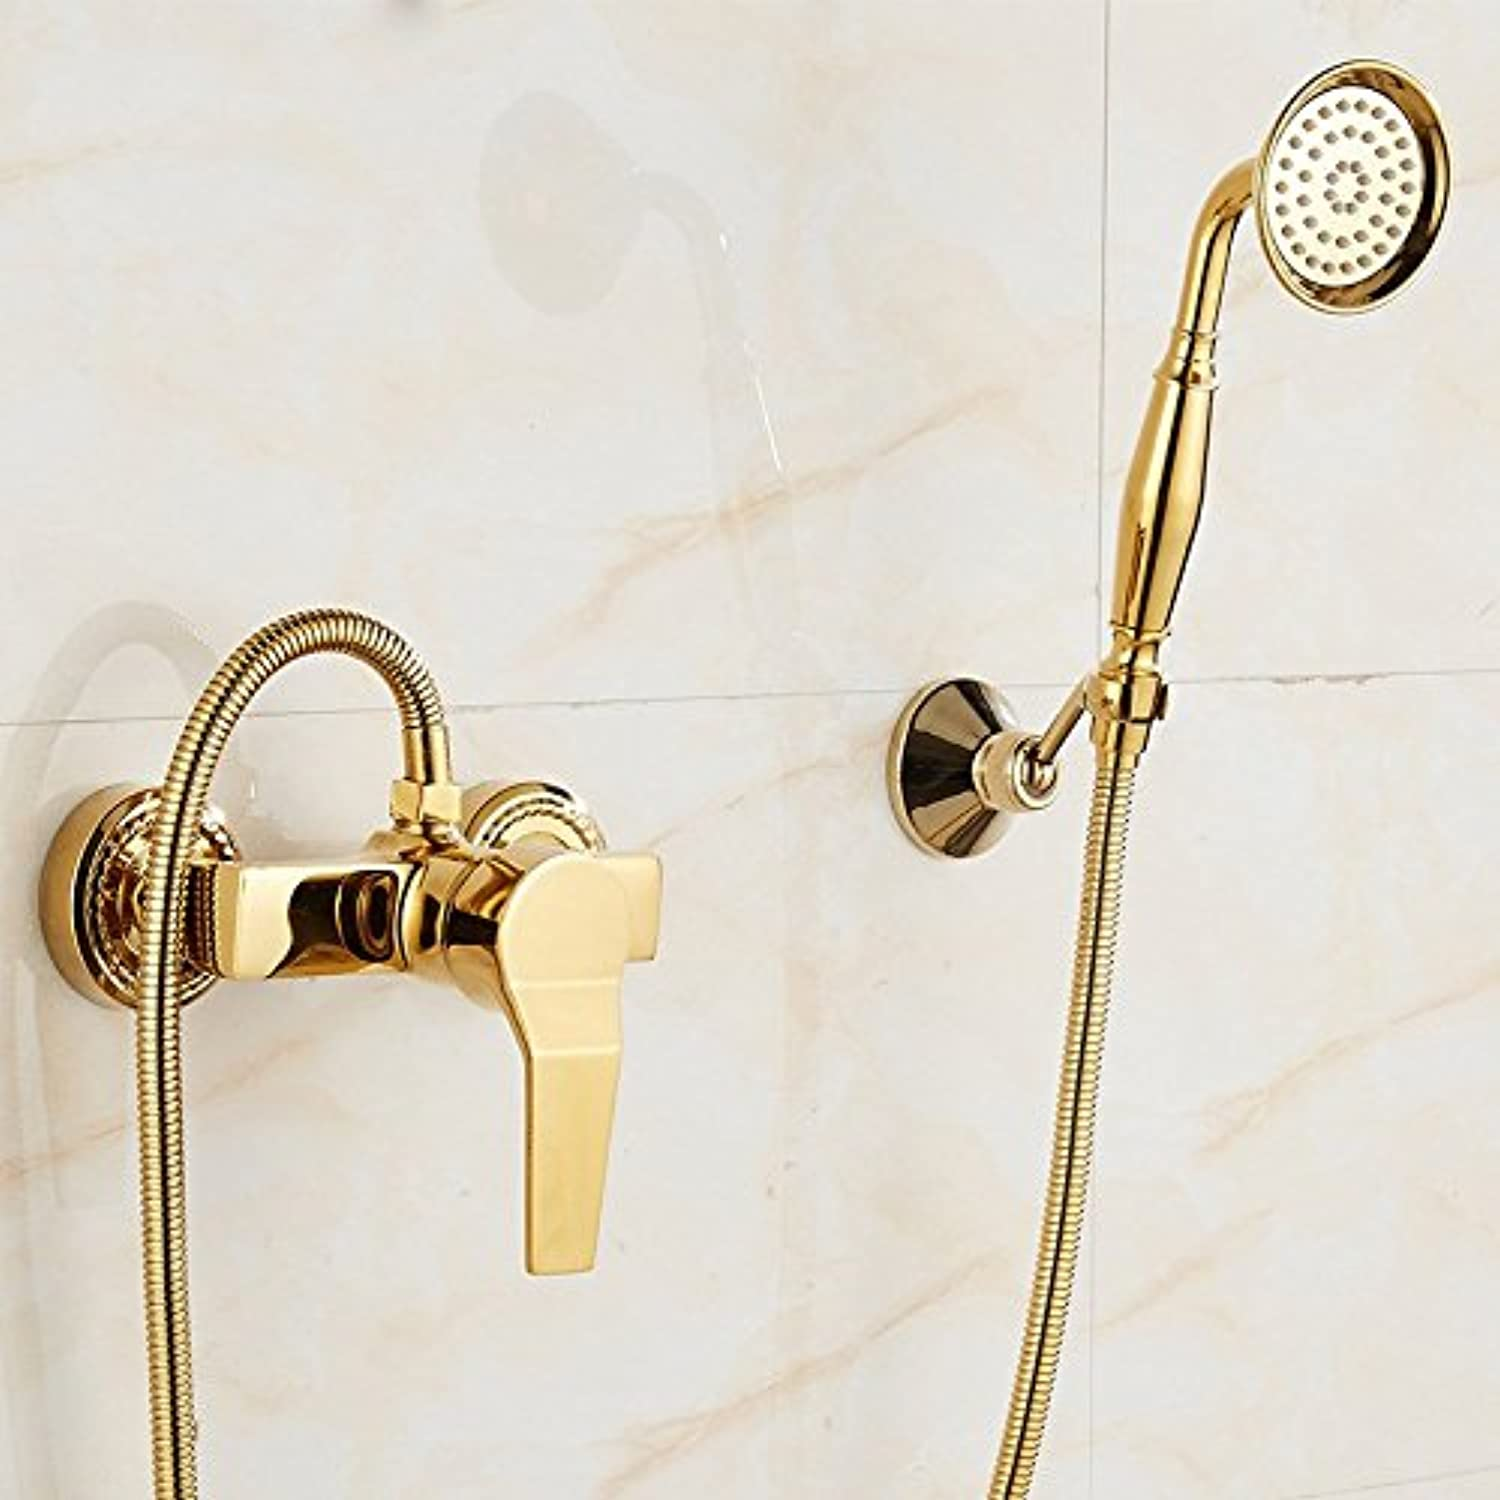 ETERNAL QUALITY Bathroom Sink Basin Tap Brass Mixer Tap Washroom Mixer Faucet The golden shower small shower kit single handle hot and cold Bath Faucet Kitchen Sink Taps